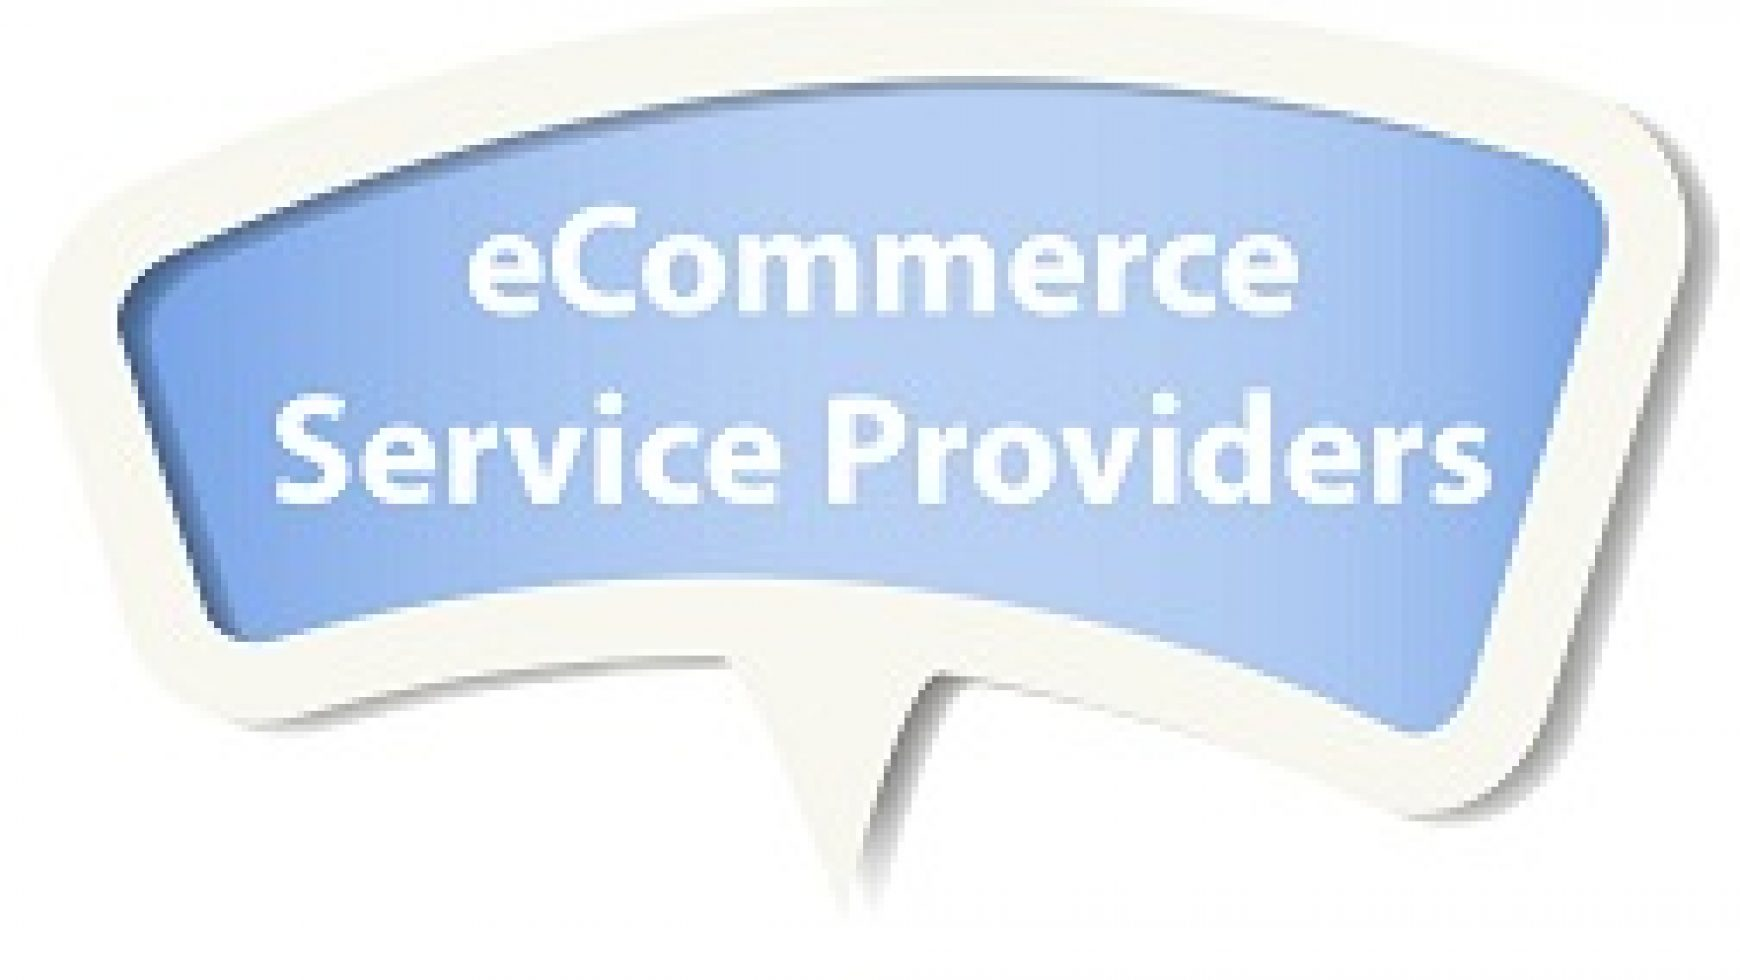 HOW TO CHOOSE YOUR E-COMMERCE SERVICE PROVIDER?